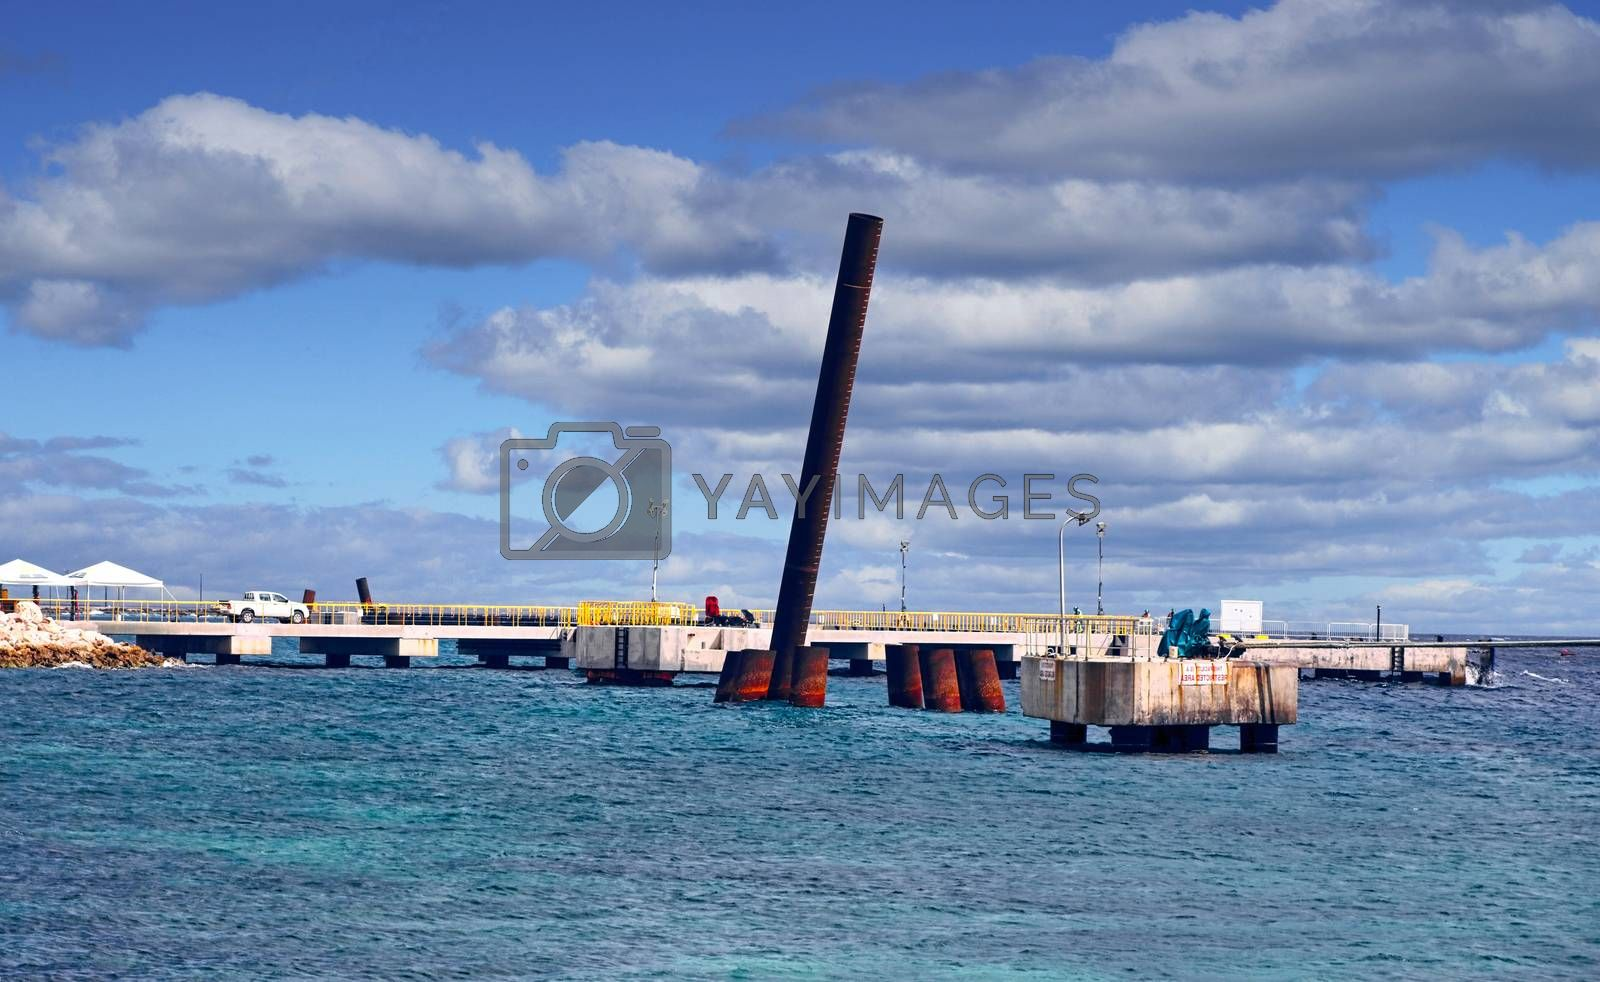 New Pier Construction in the Harbor of Curacao